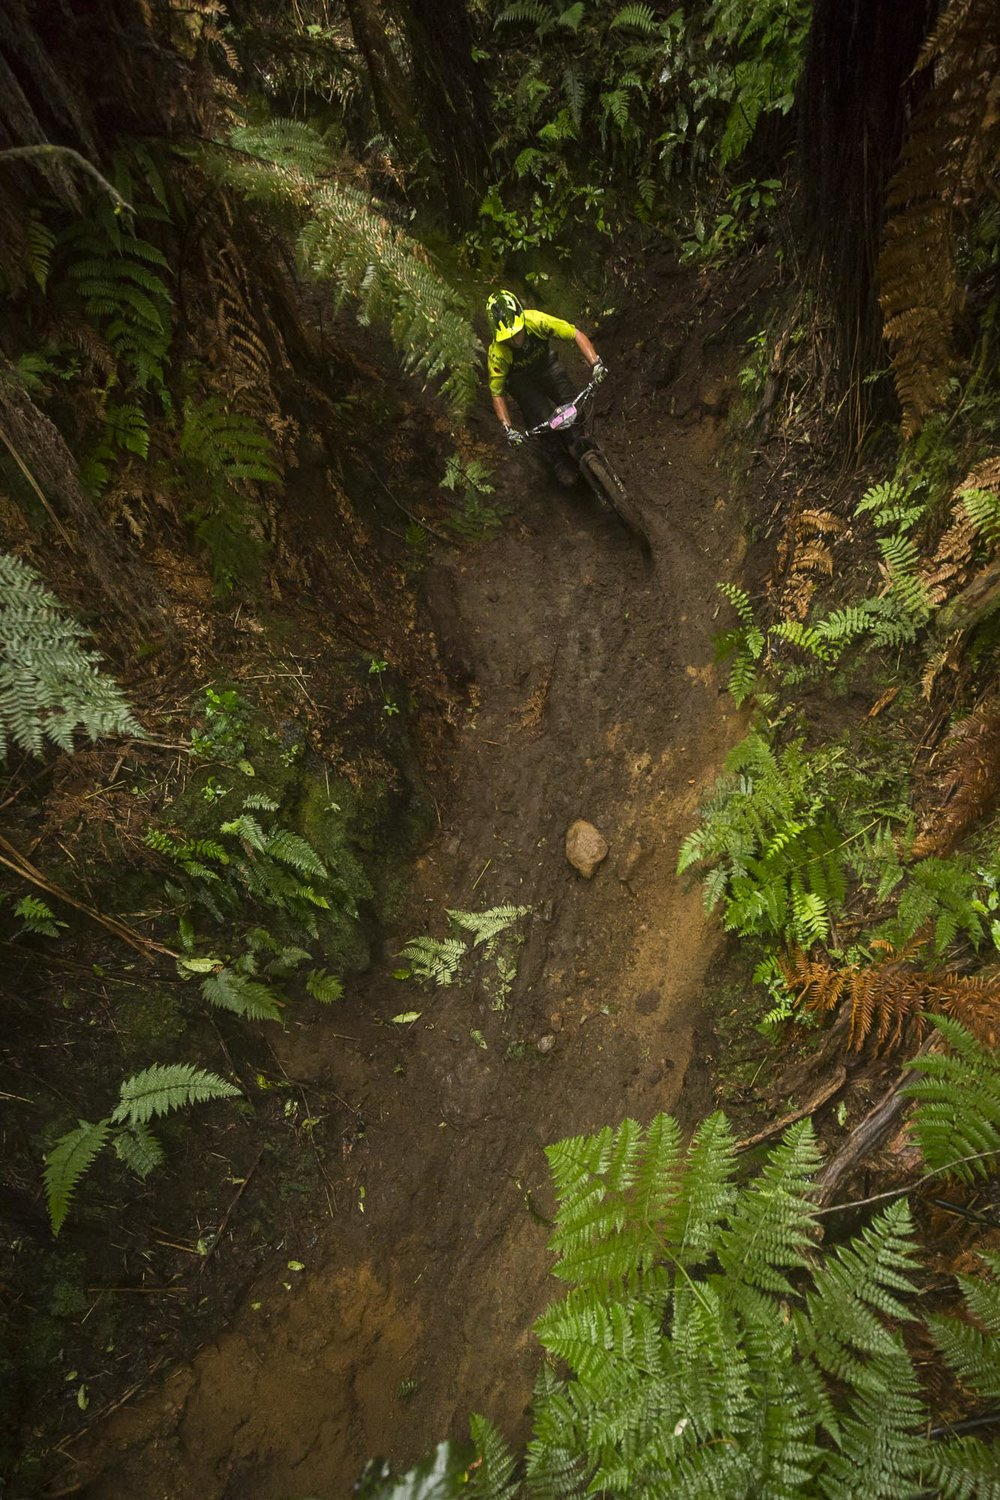 Bex is a savvy rider in the mud, she just came third at the NZ Enduro and we all know how that race went!